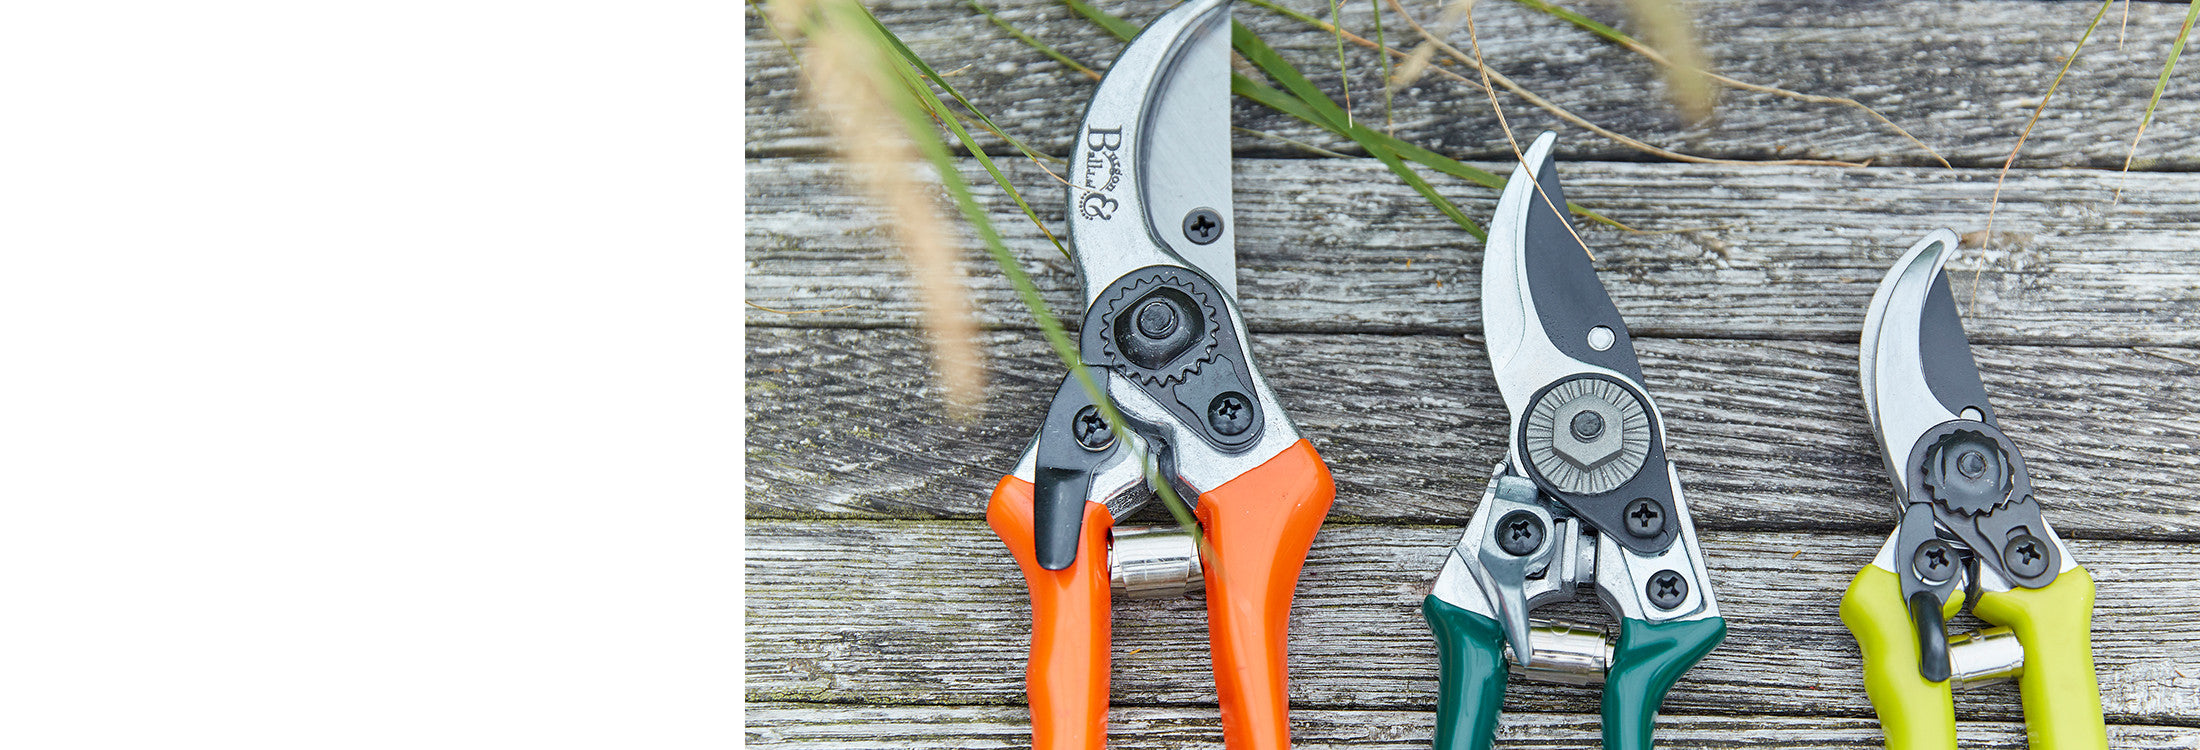 Garden Secateurs & Pruning Tools